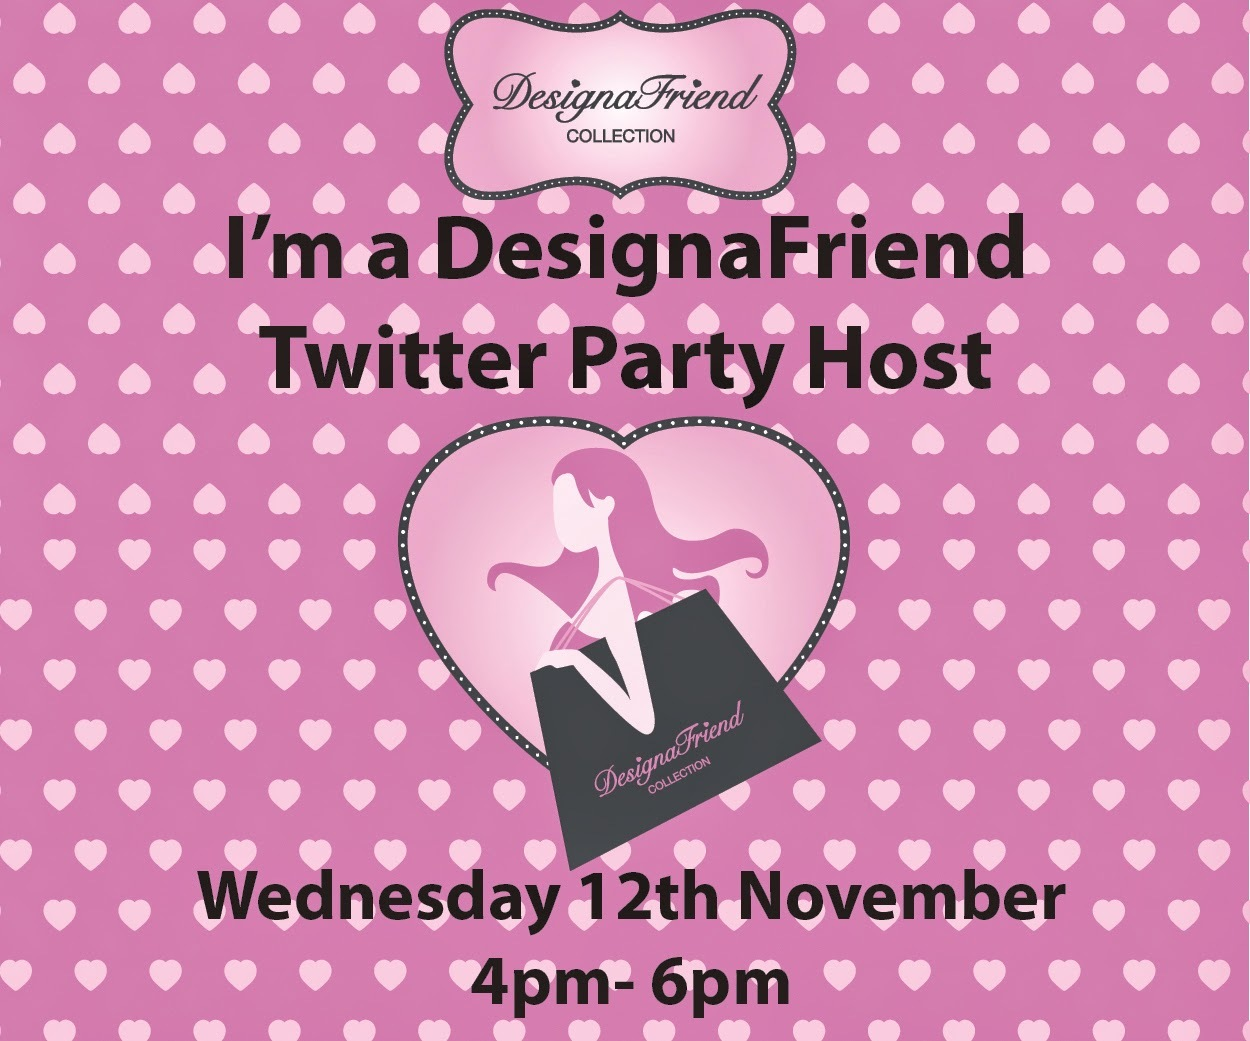 Get ready for another twitter party on Wednesday 12th November !